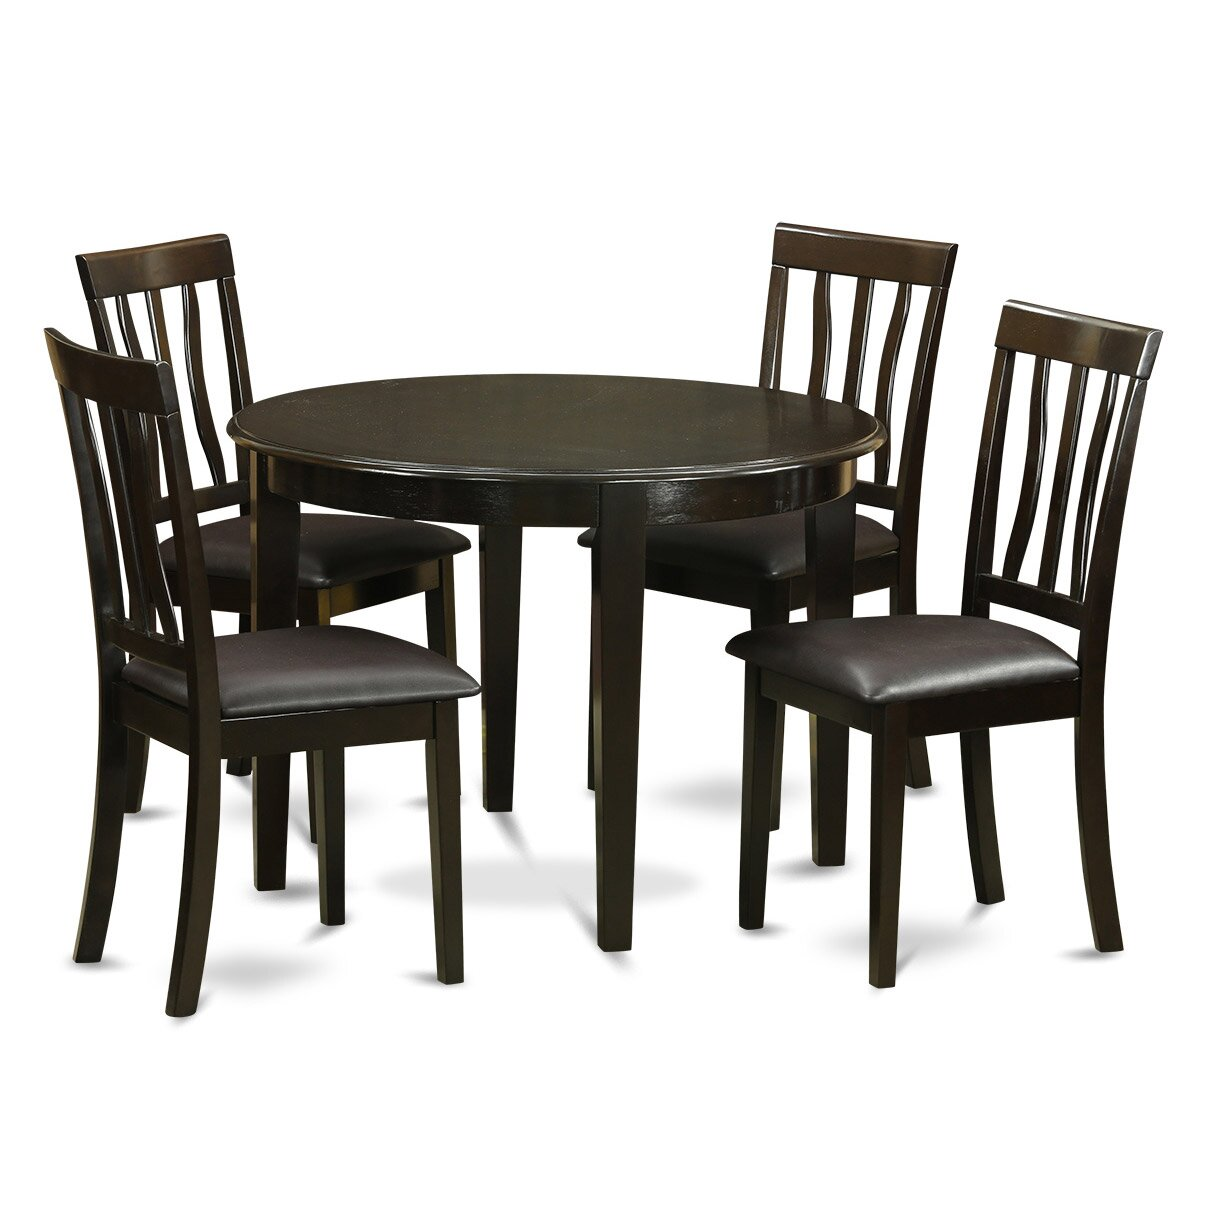 Small Wooden Kitchen Table And Chairs 3 Piece Set: Wooden Importers Boston 5 Piece Dining Set